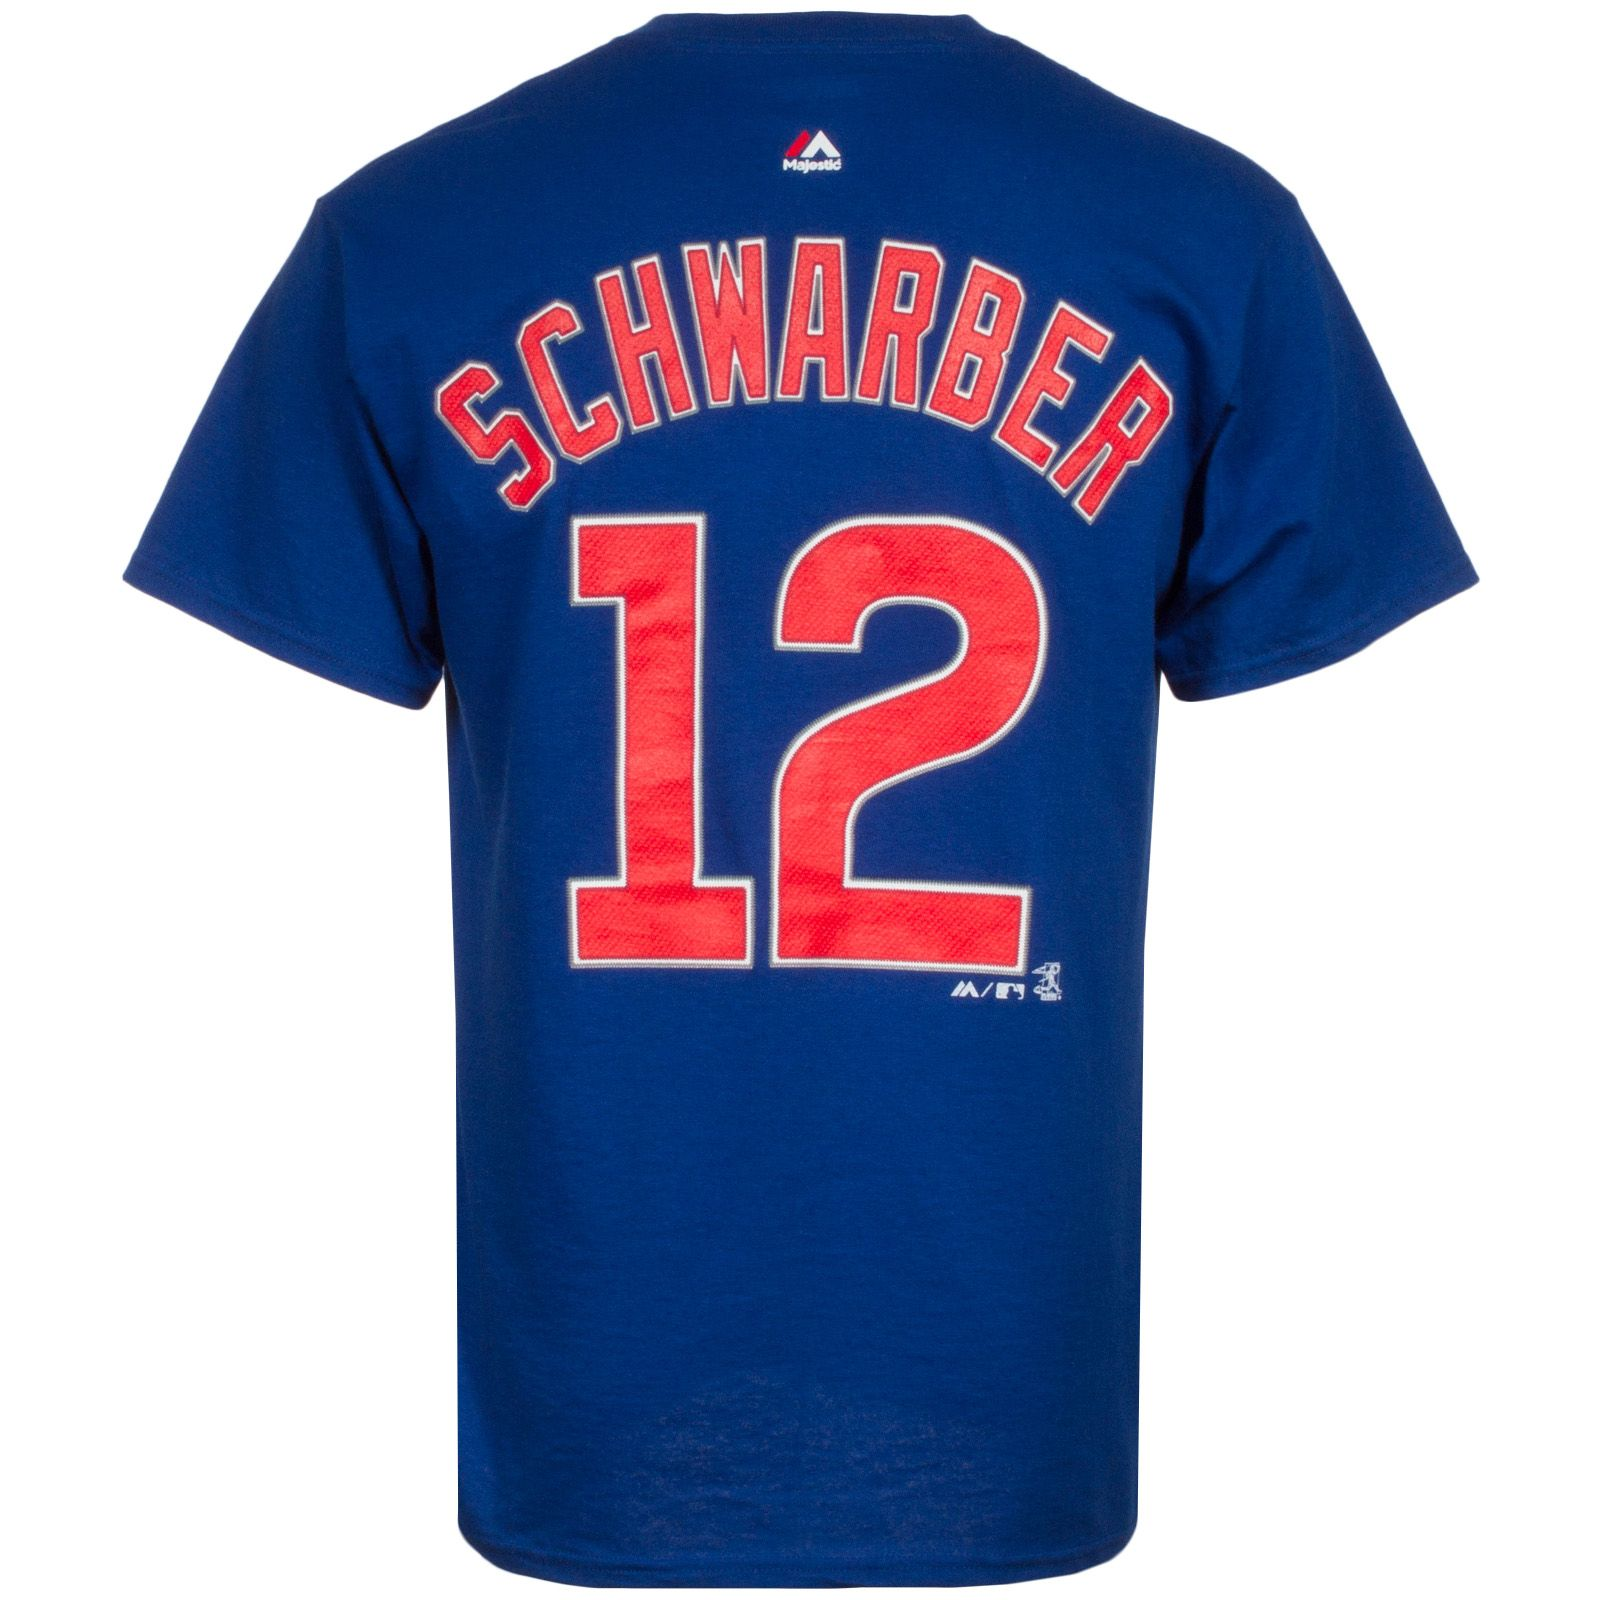 Chicago Cubs Mens Kyle Schwarber Player Tee by Majestic #Chicago #Cubs #ChicagoCubs #KyleSchwarber #Schwarber